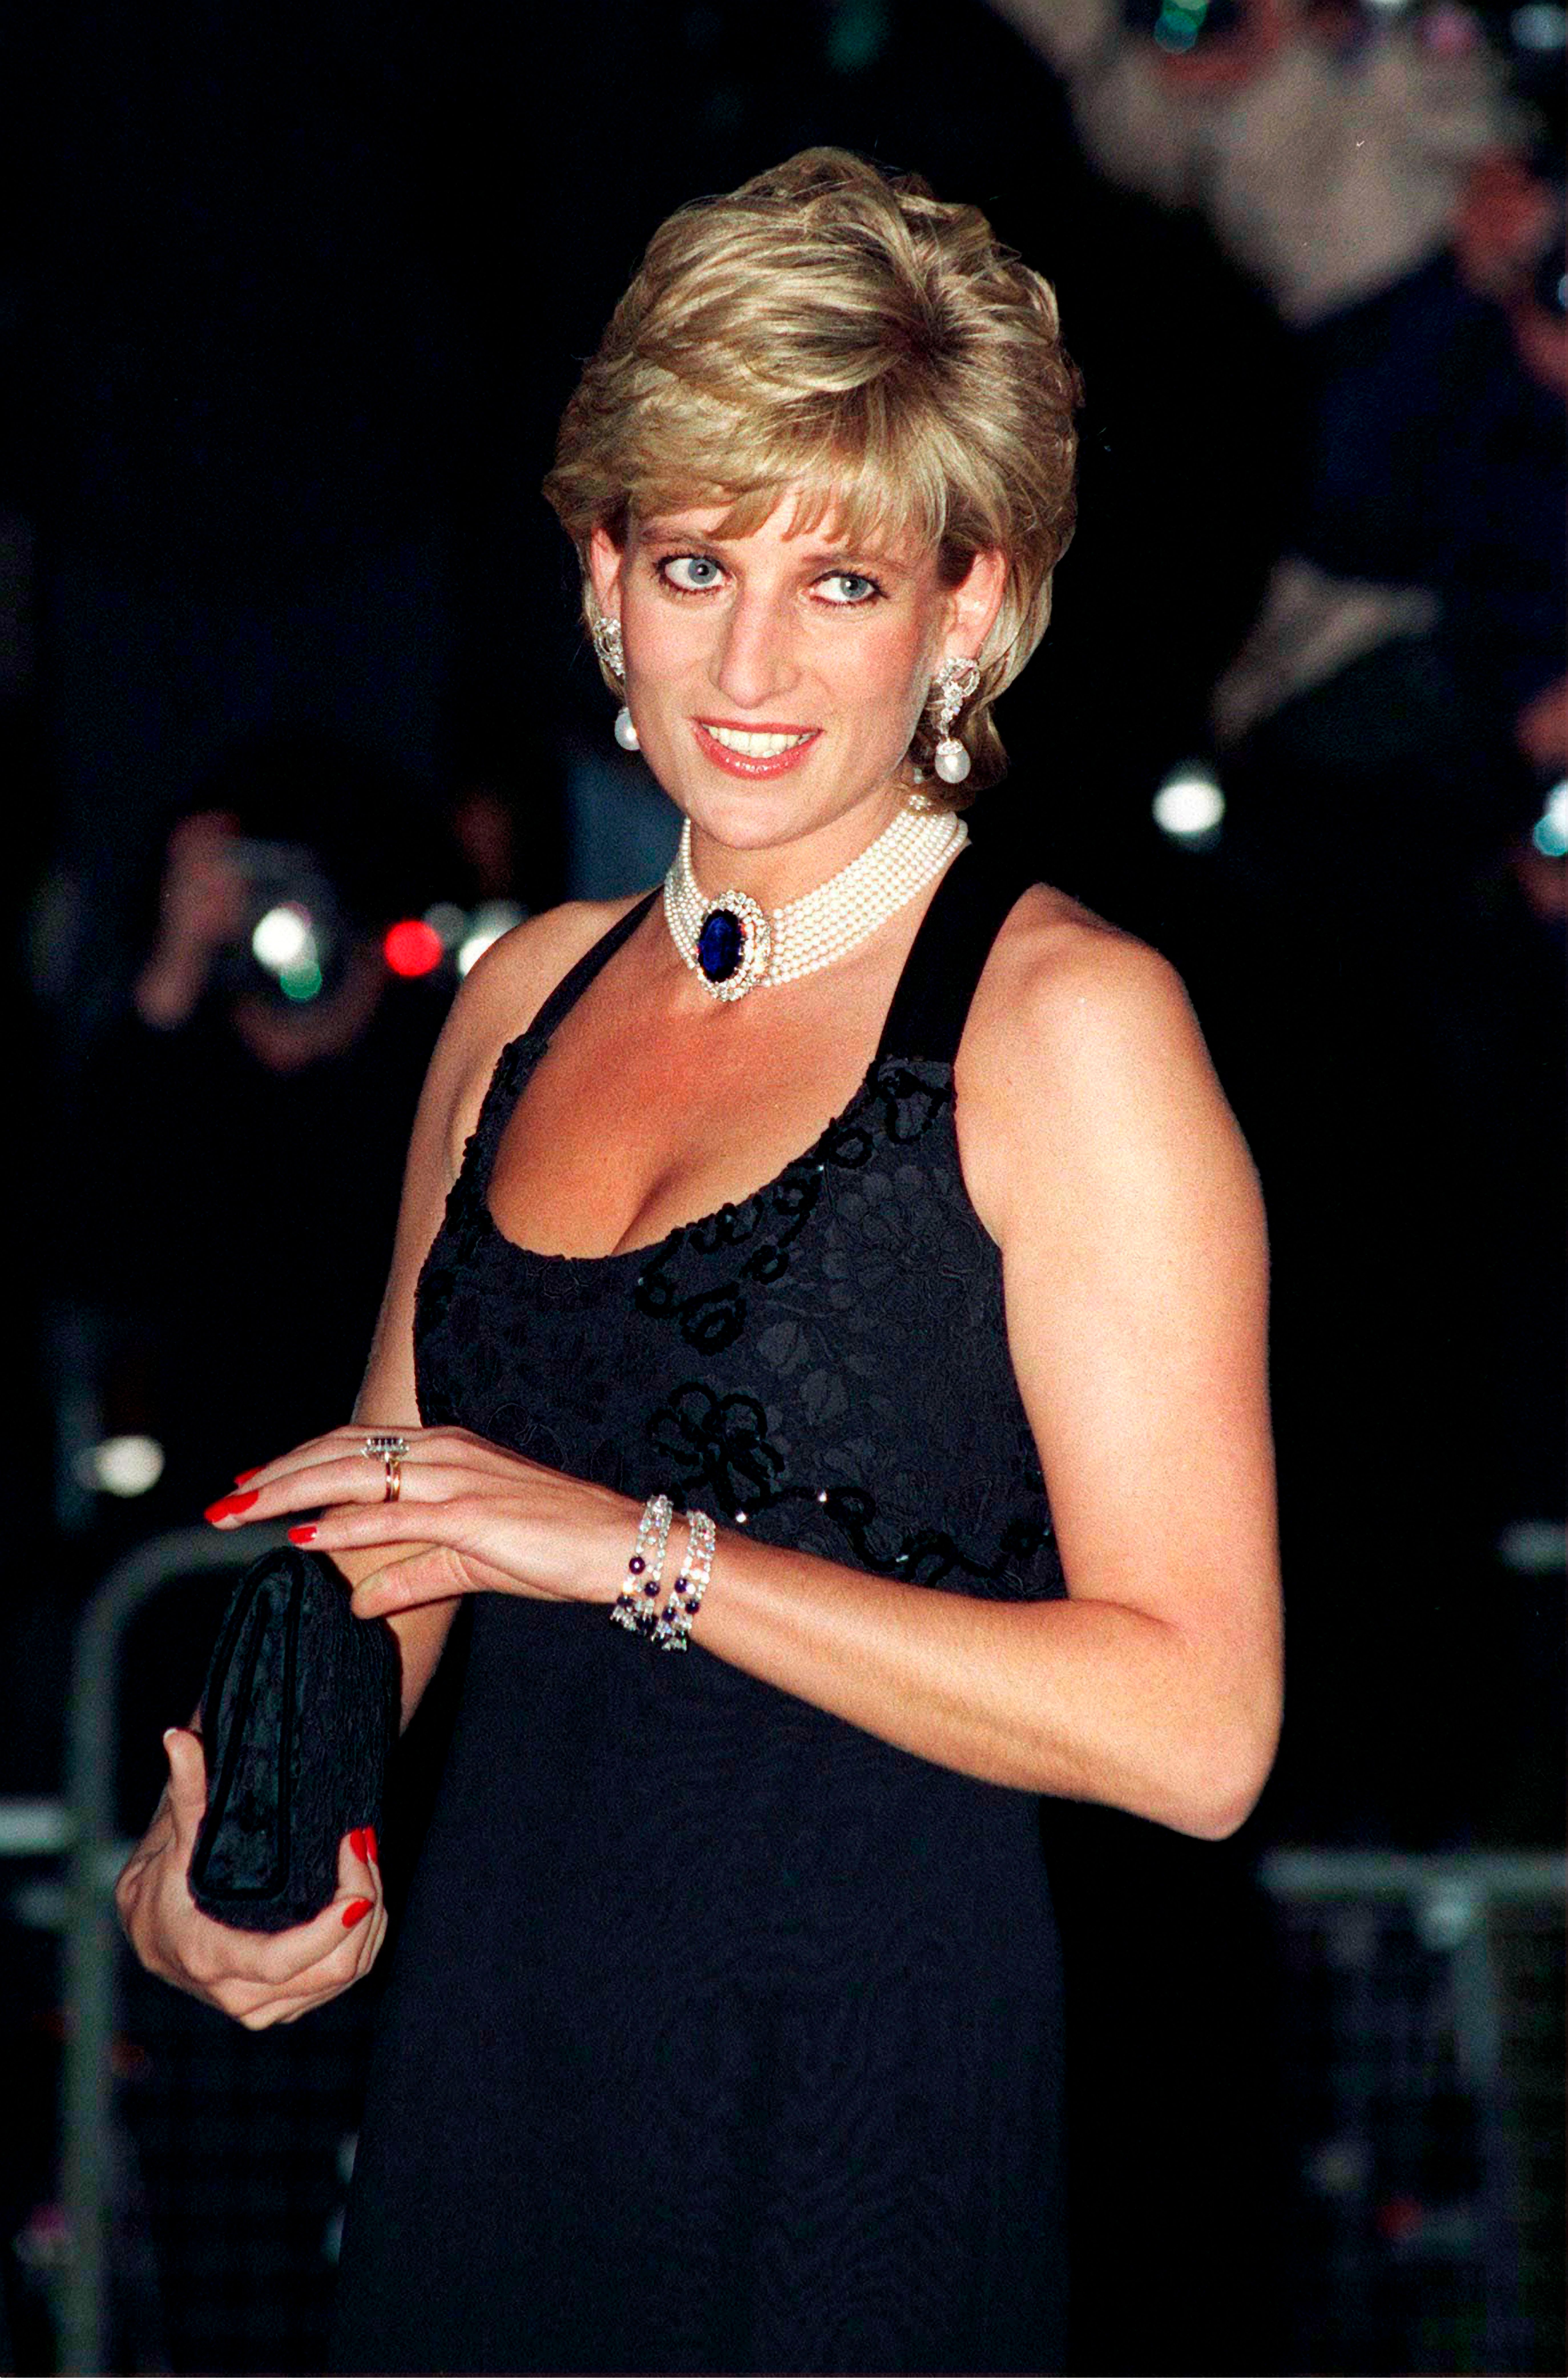 Diana, Princess Of Wales, at the gala for Aid Of Cancer Research in London in 1995   Source: Getty Images